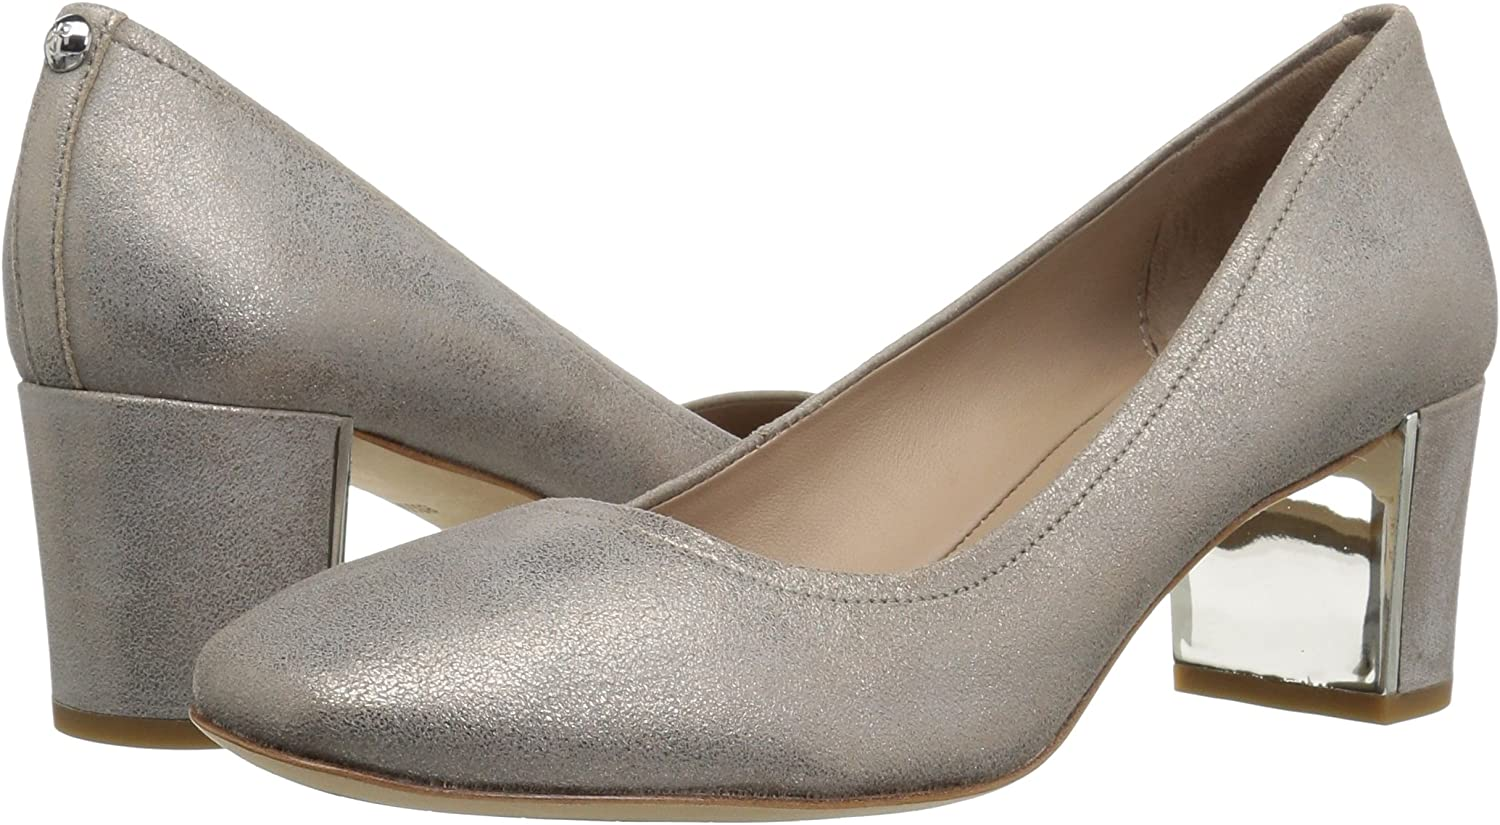 Donald J Pliner Womens Corin Pump